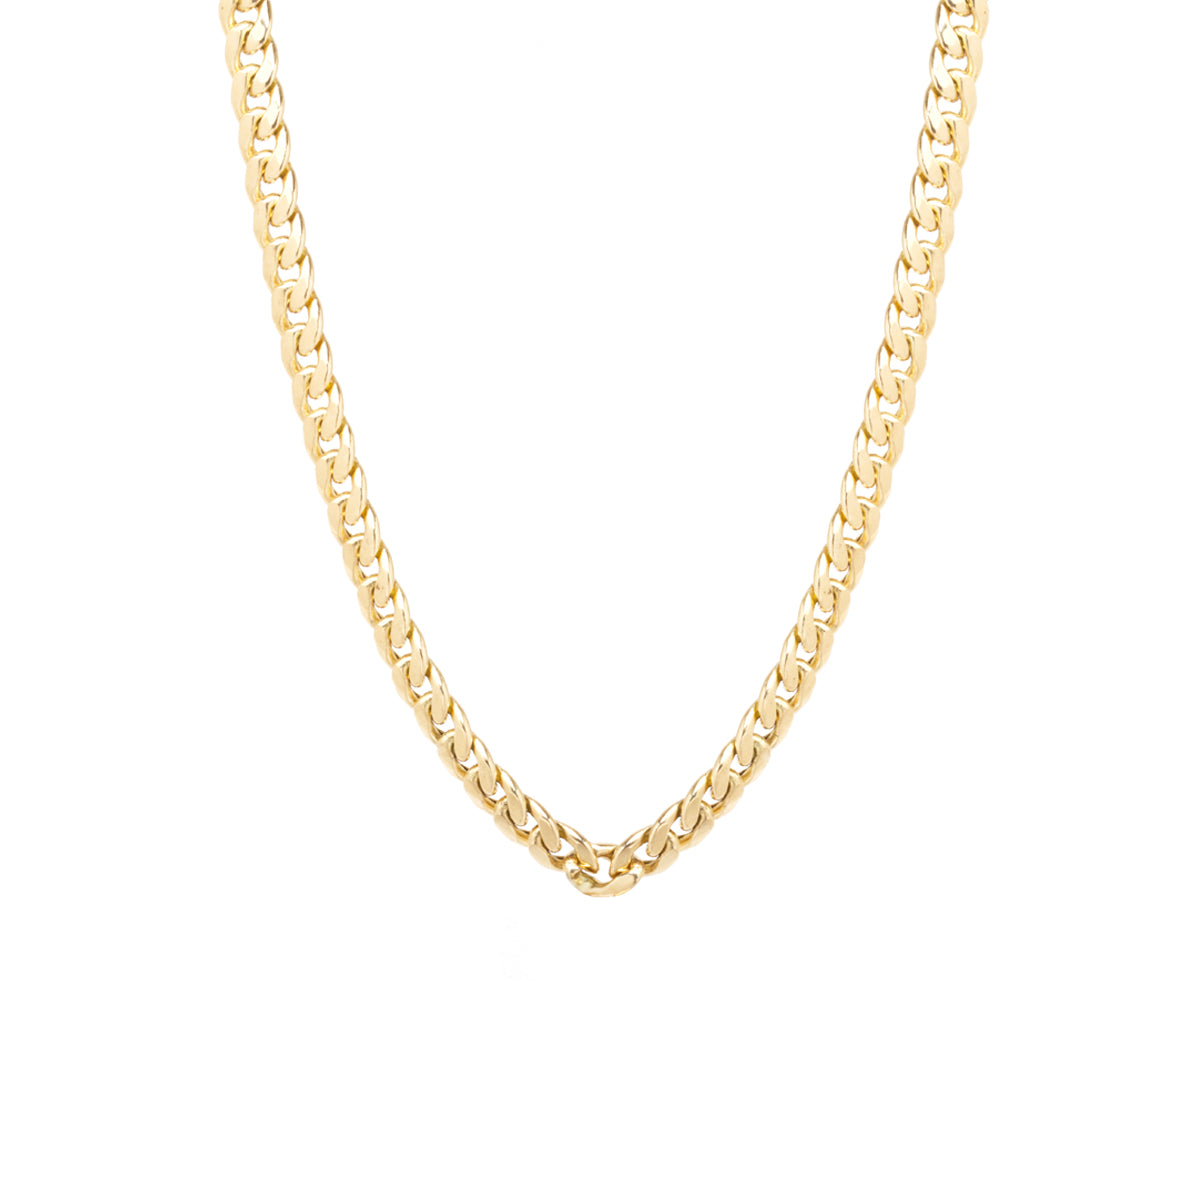 14k gold large curb chain necklace